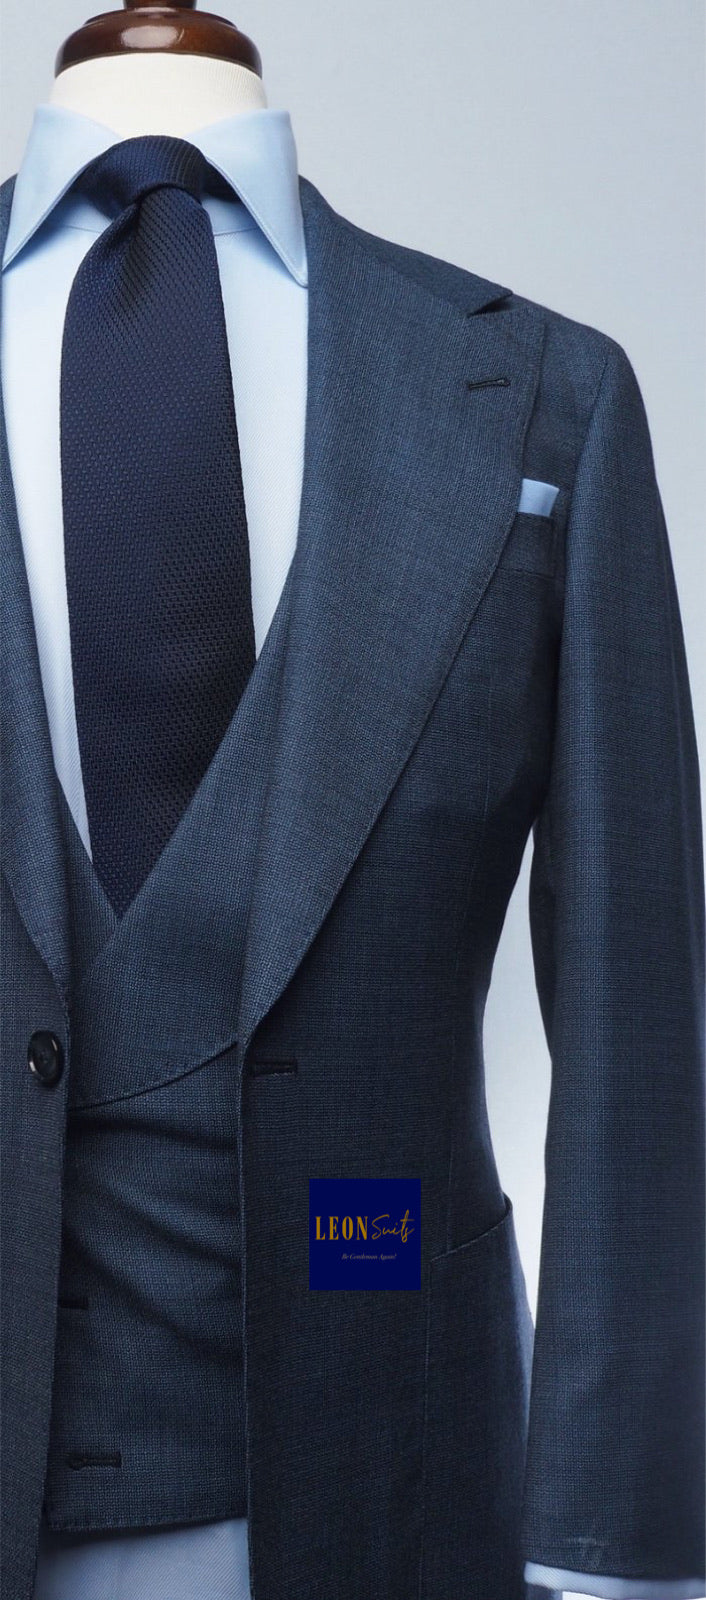 Premium Bespoke Blue in Grey tone 3-Piece Suit